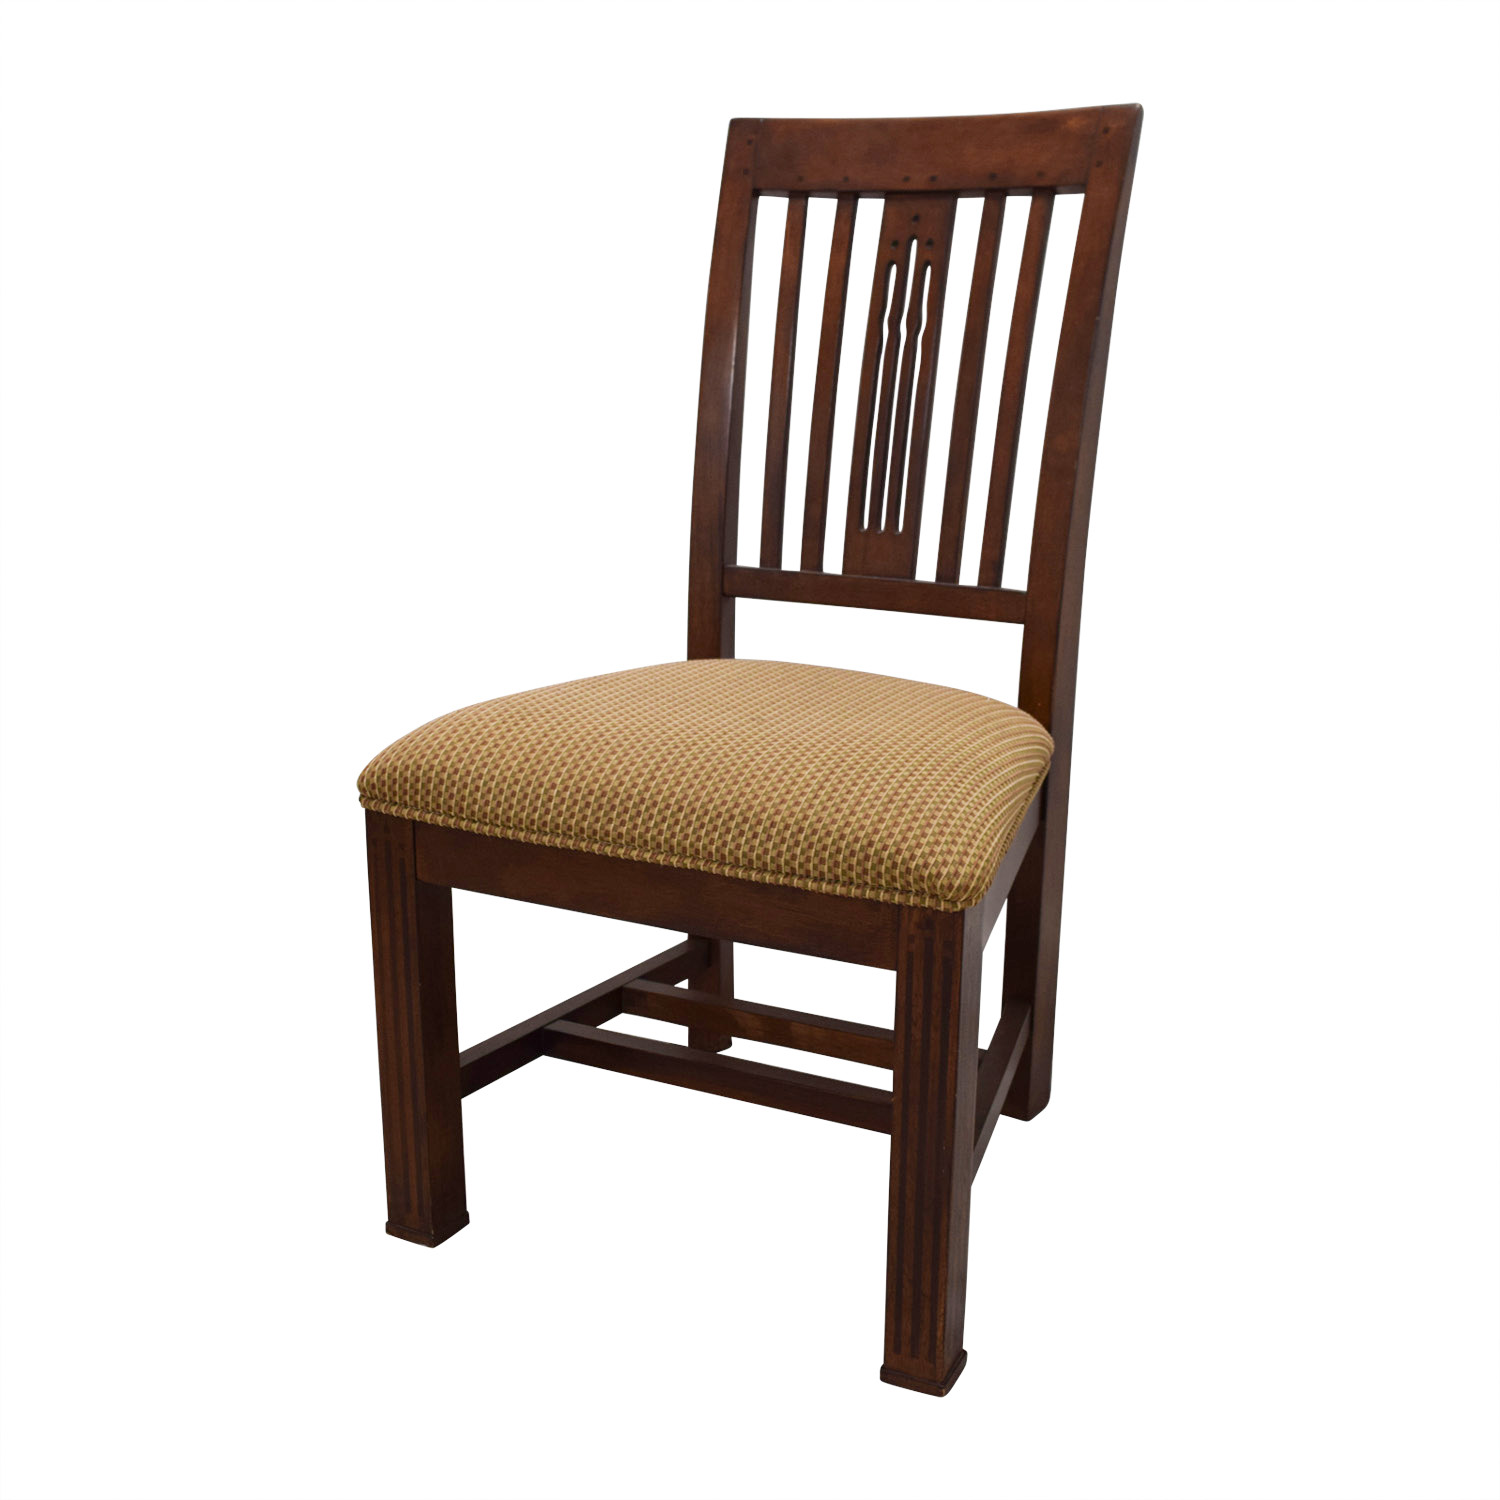 Mission Chairs 81 Off Macy 39s Macy 39s Craft Mission Shaker Table And